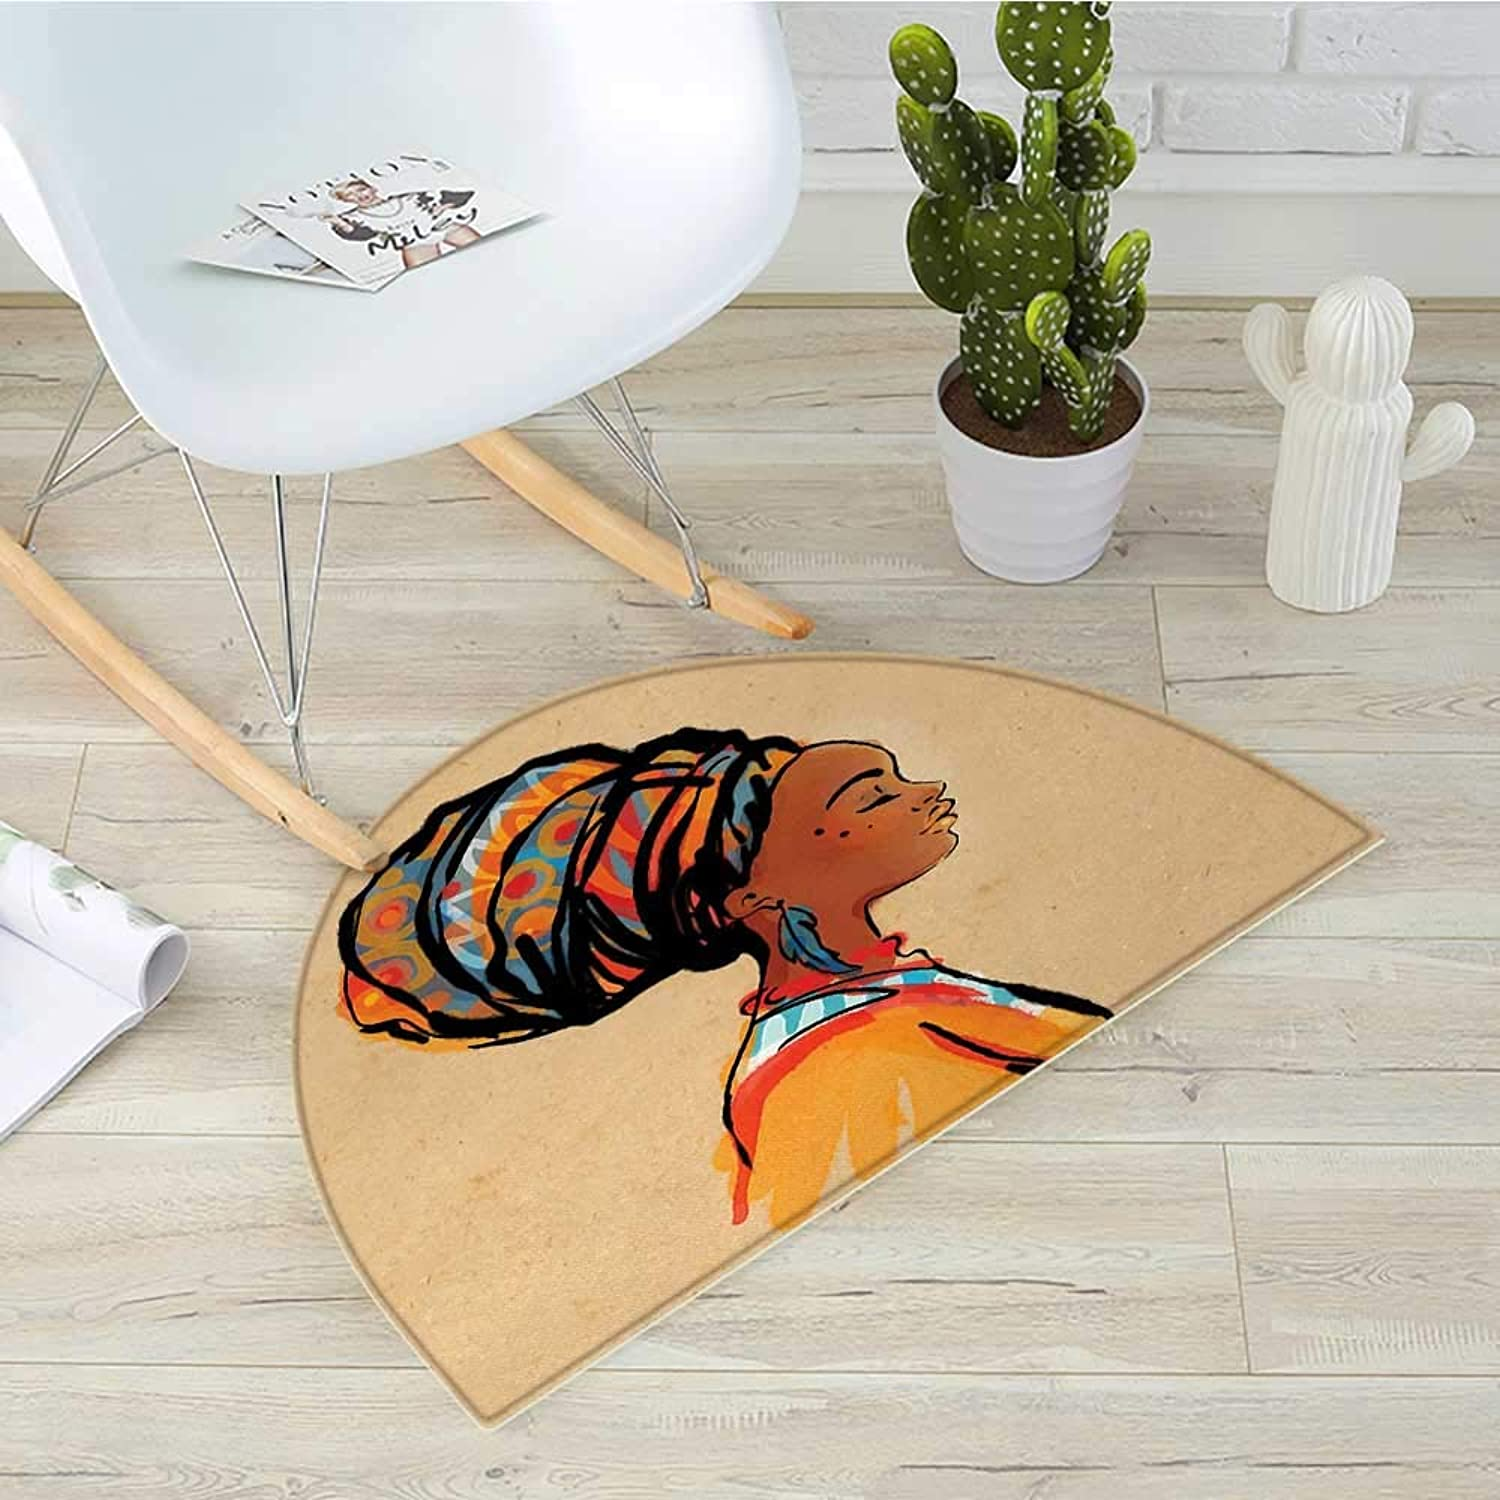 African Semicircular CushionEthnic Woman with Exotic Feather Earring and Scarf Zulu Hippie Artwork Entry Door Mat H 39.3  xD 59  Caramel and Marigold